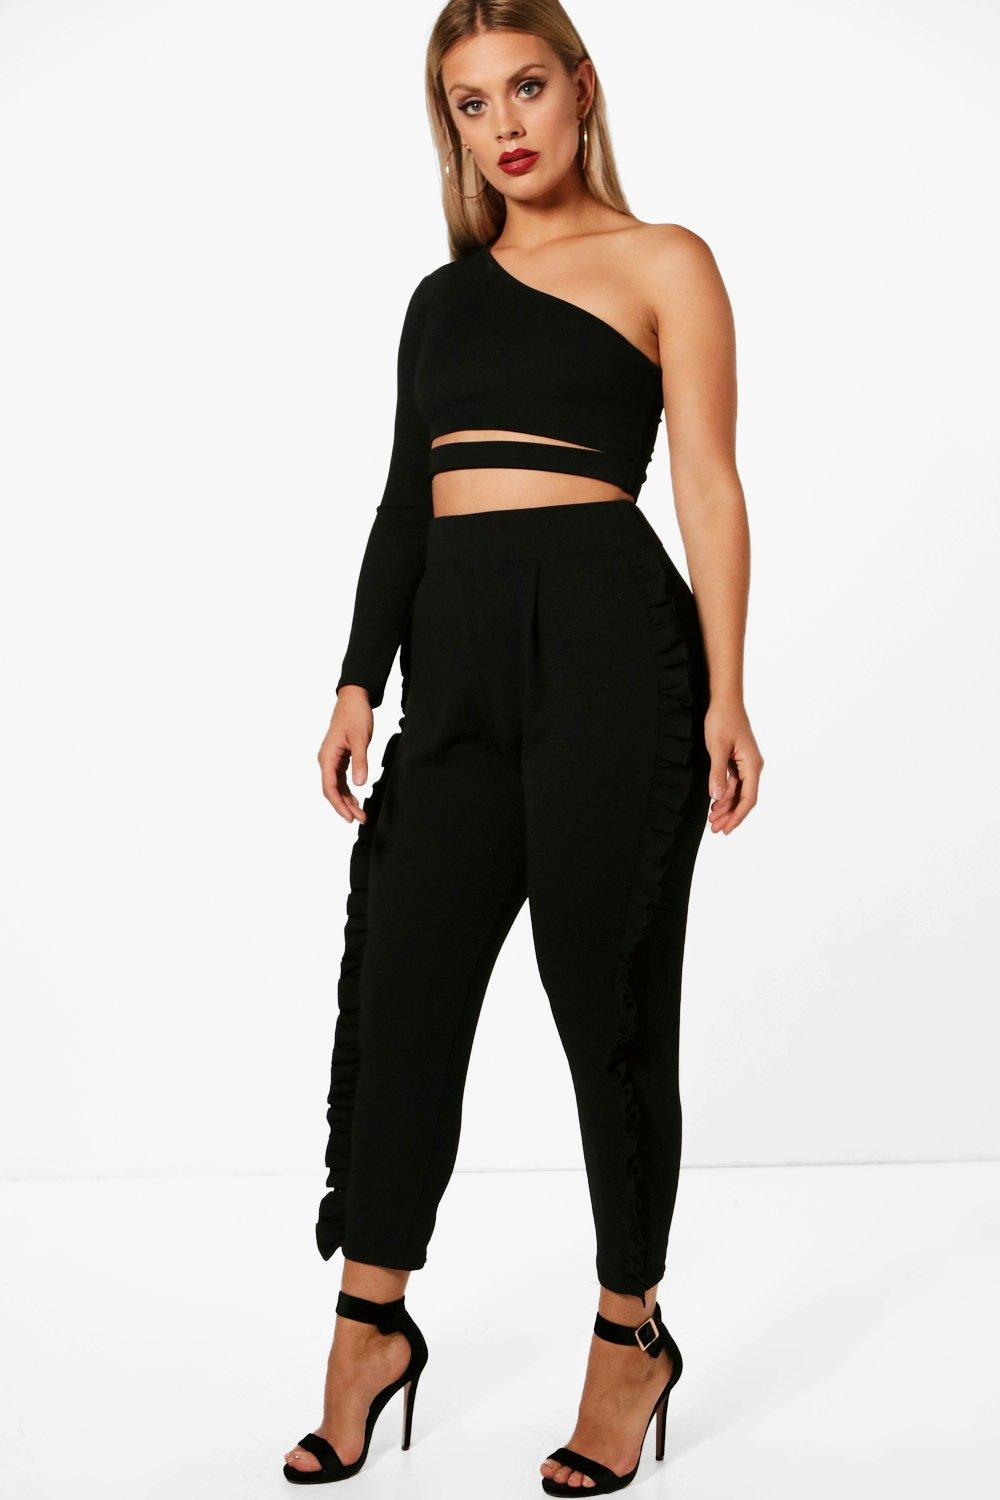 Boohoo Purity praise Plus Frill Detail Trouser Boohoo - Ropa boohoo plus y curve Comprar SIOEODR